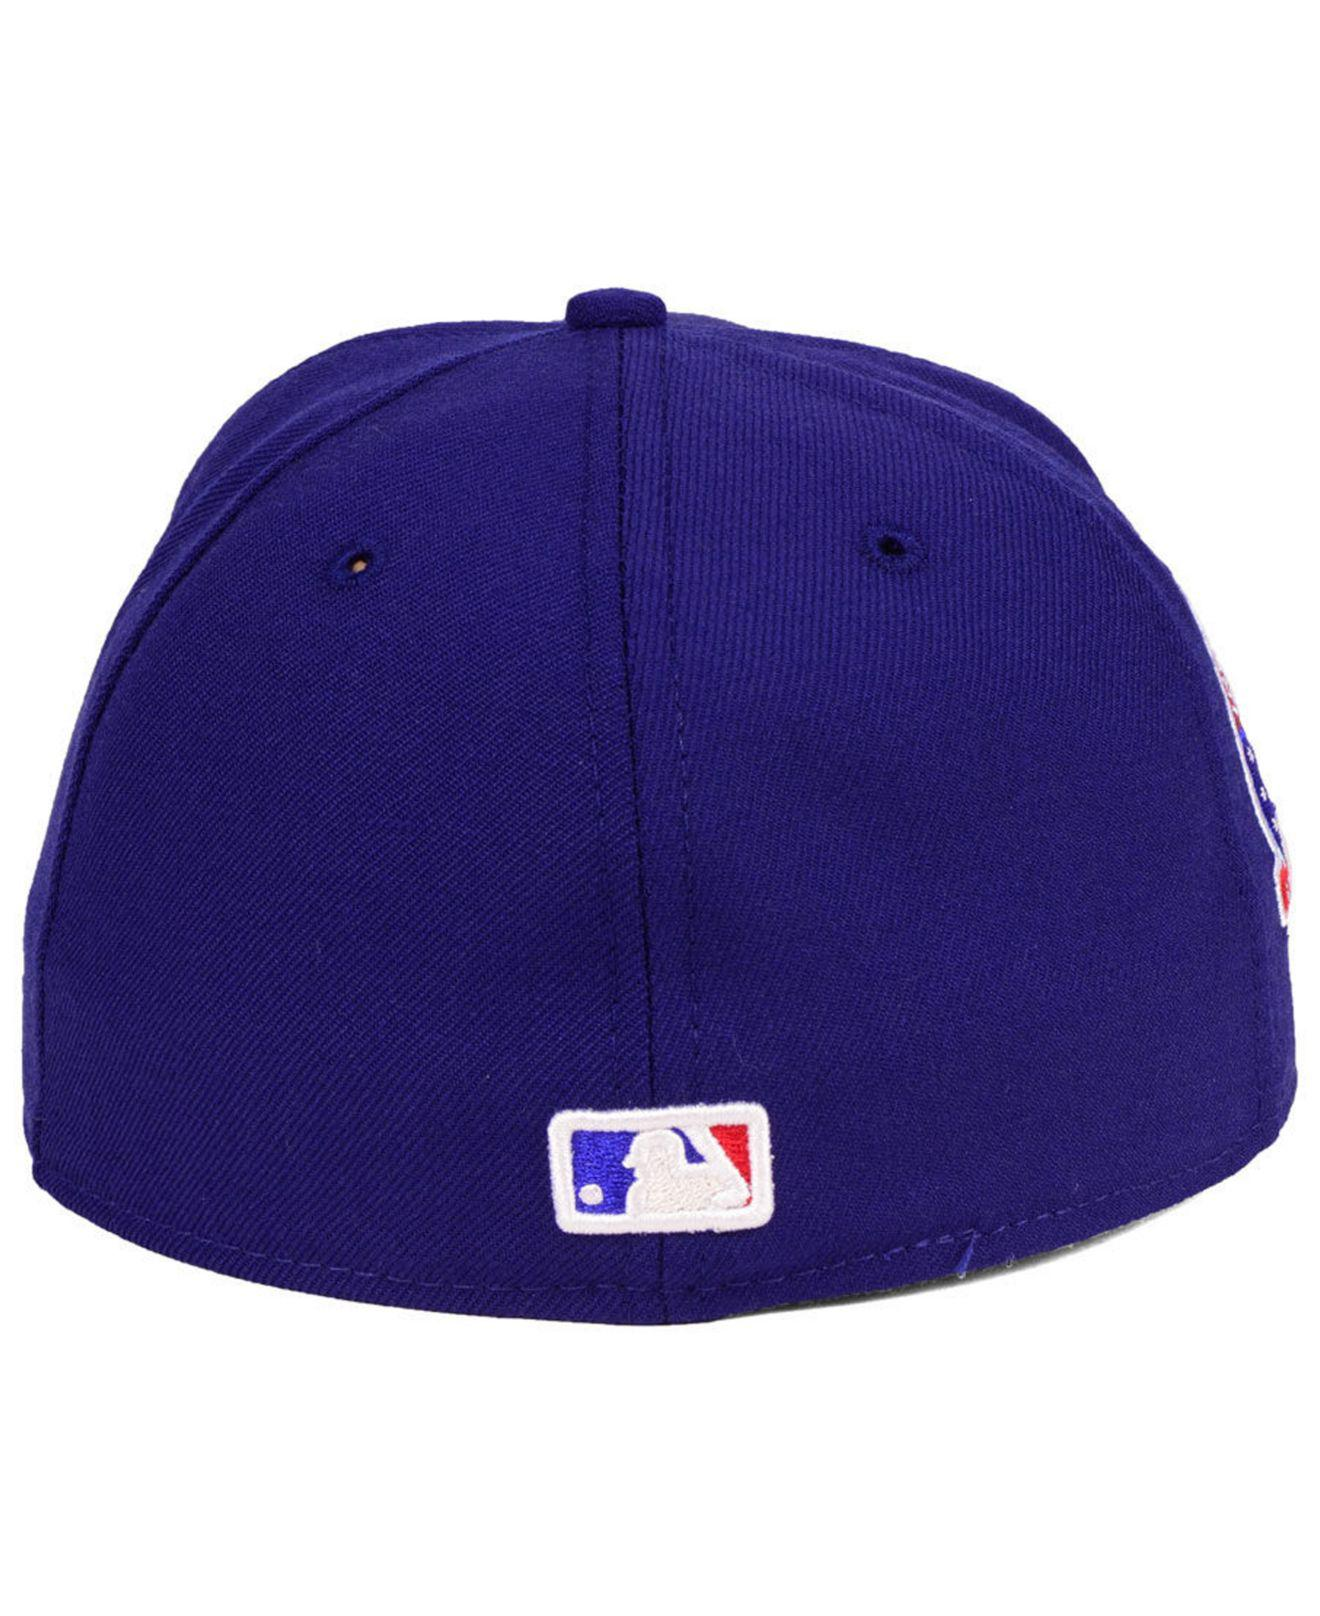 info for e6ad4 89fff ... hot lyst ktz los angeles dodgers anniversary pack 59fifty fitted cap  89b98 5aecd